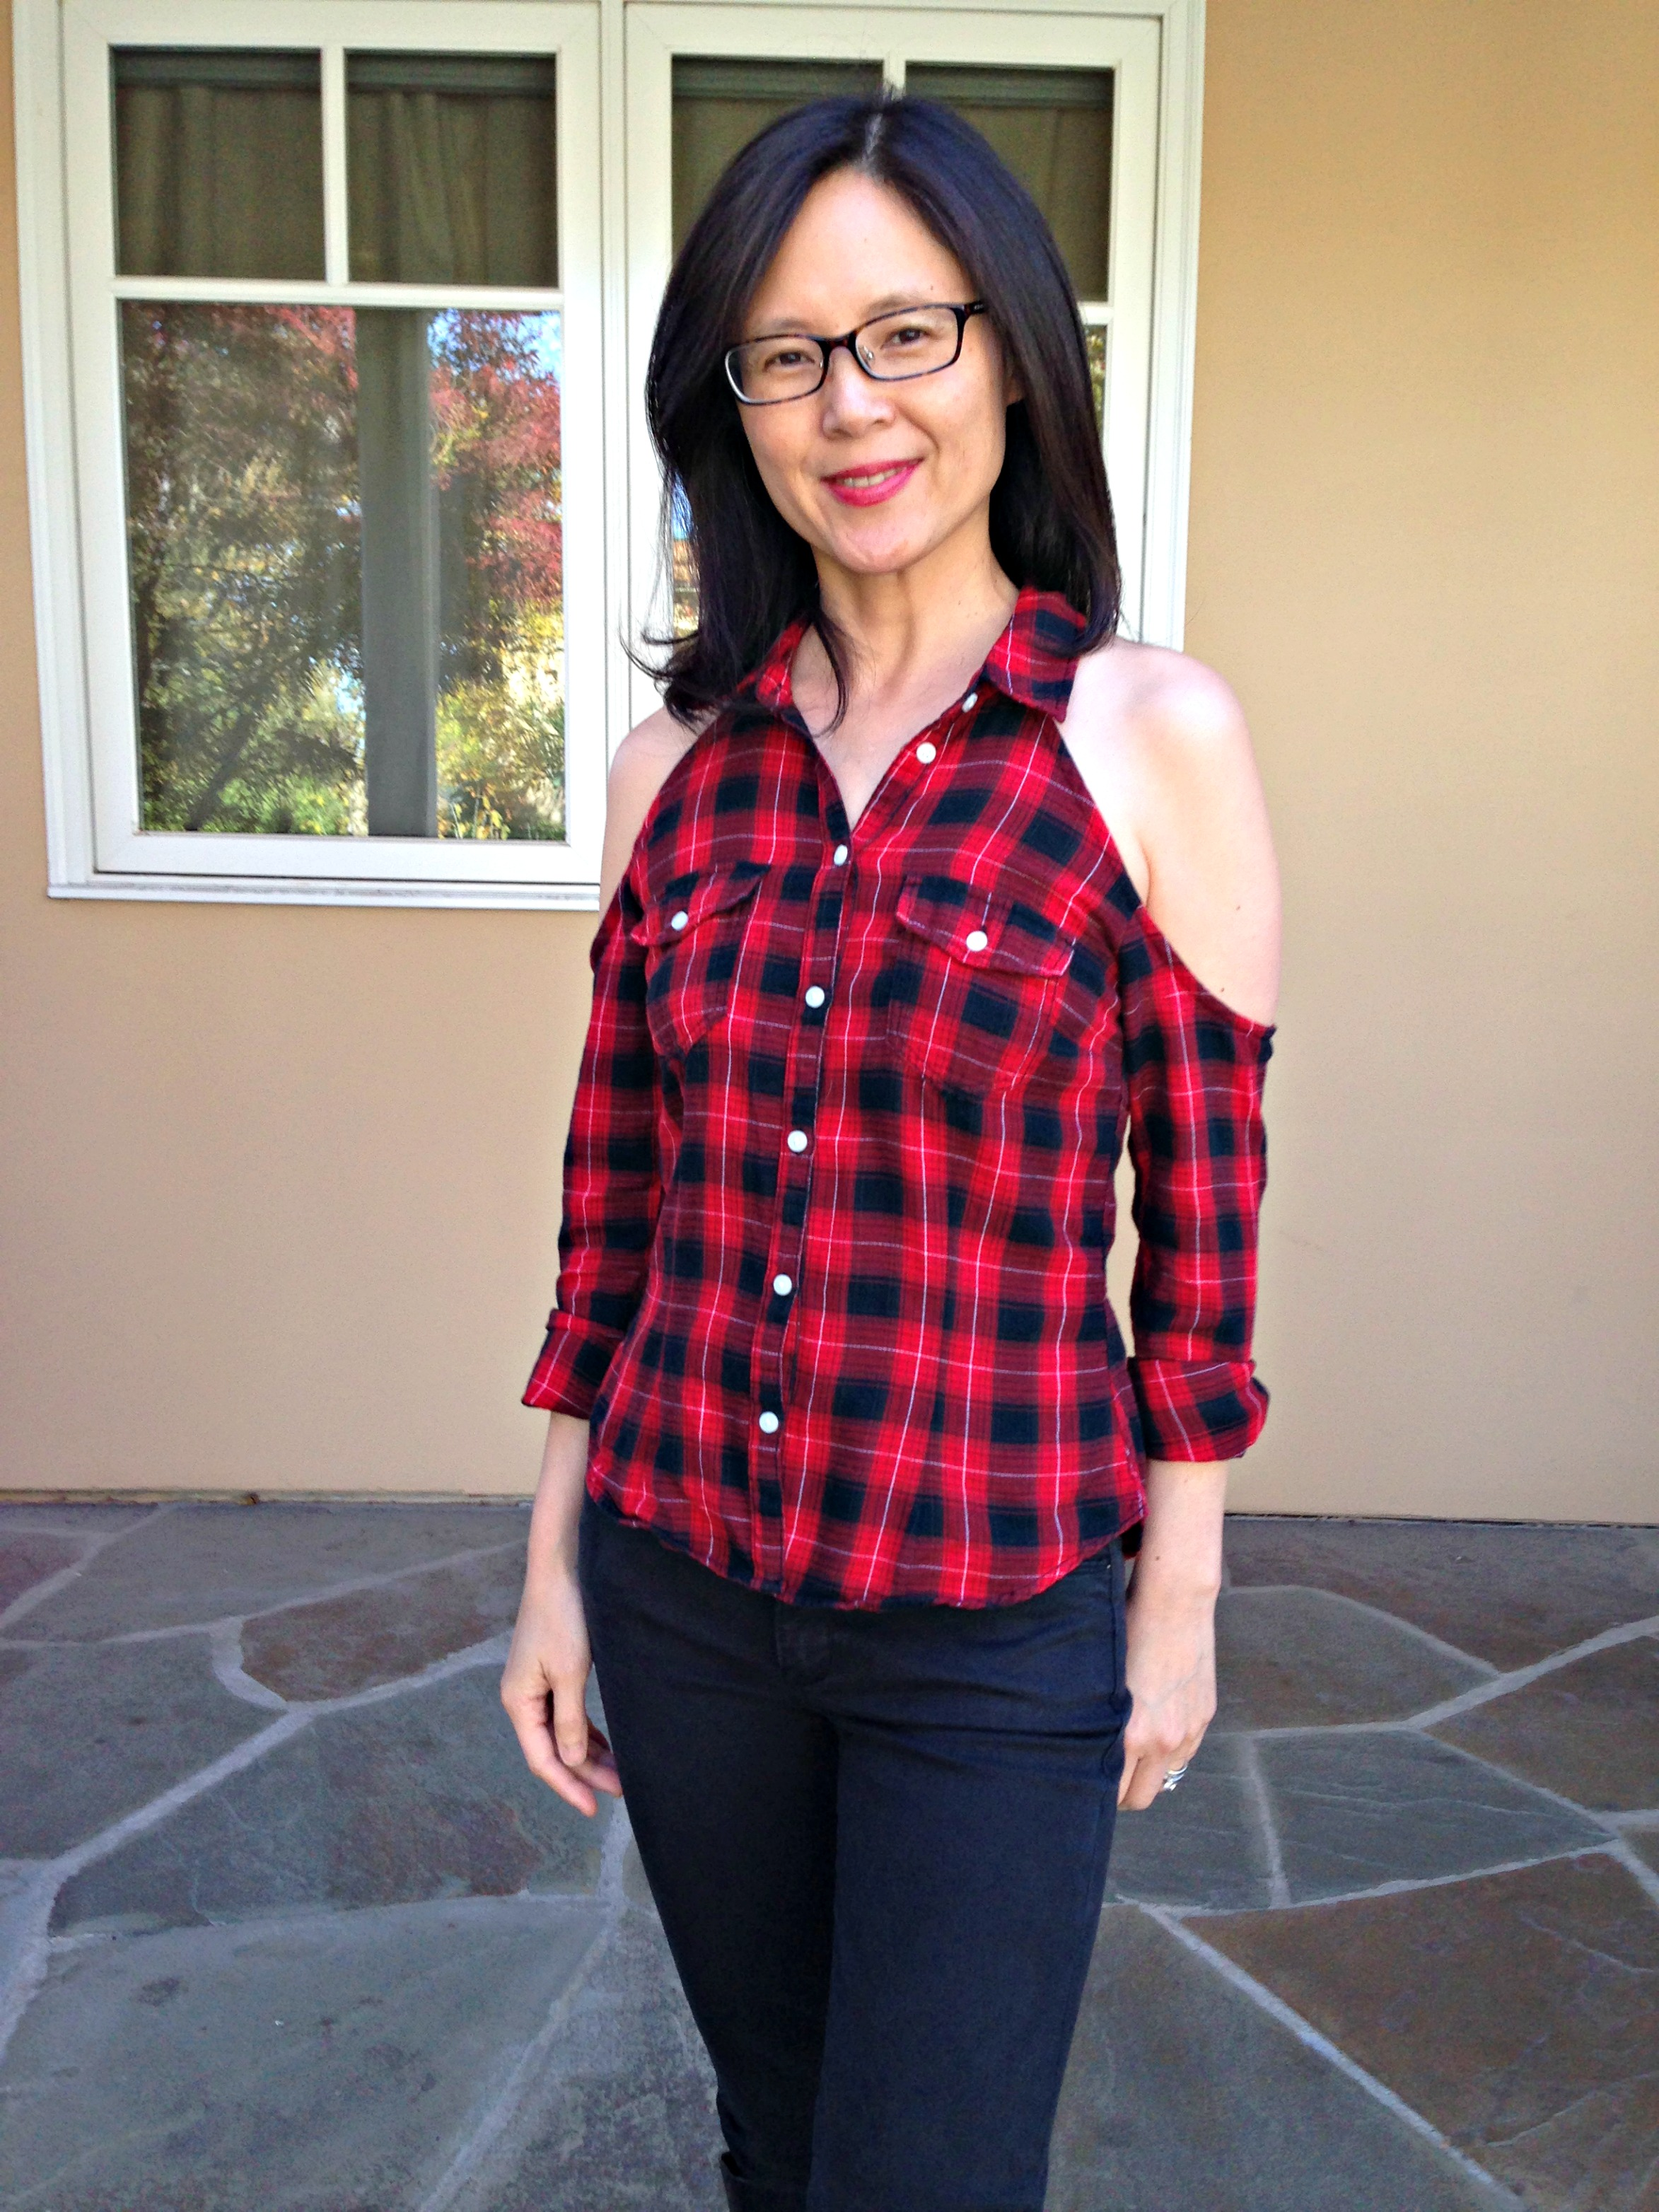 Cold Shoulder Flannel Shirt Refashion - Front View